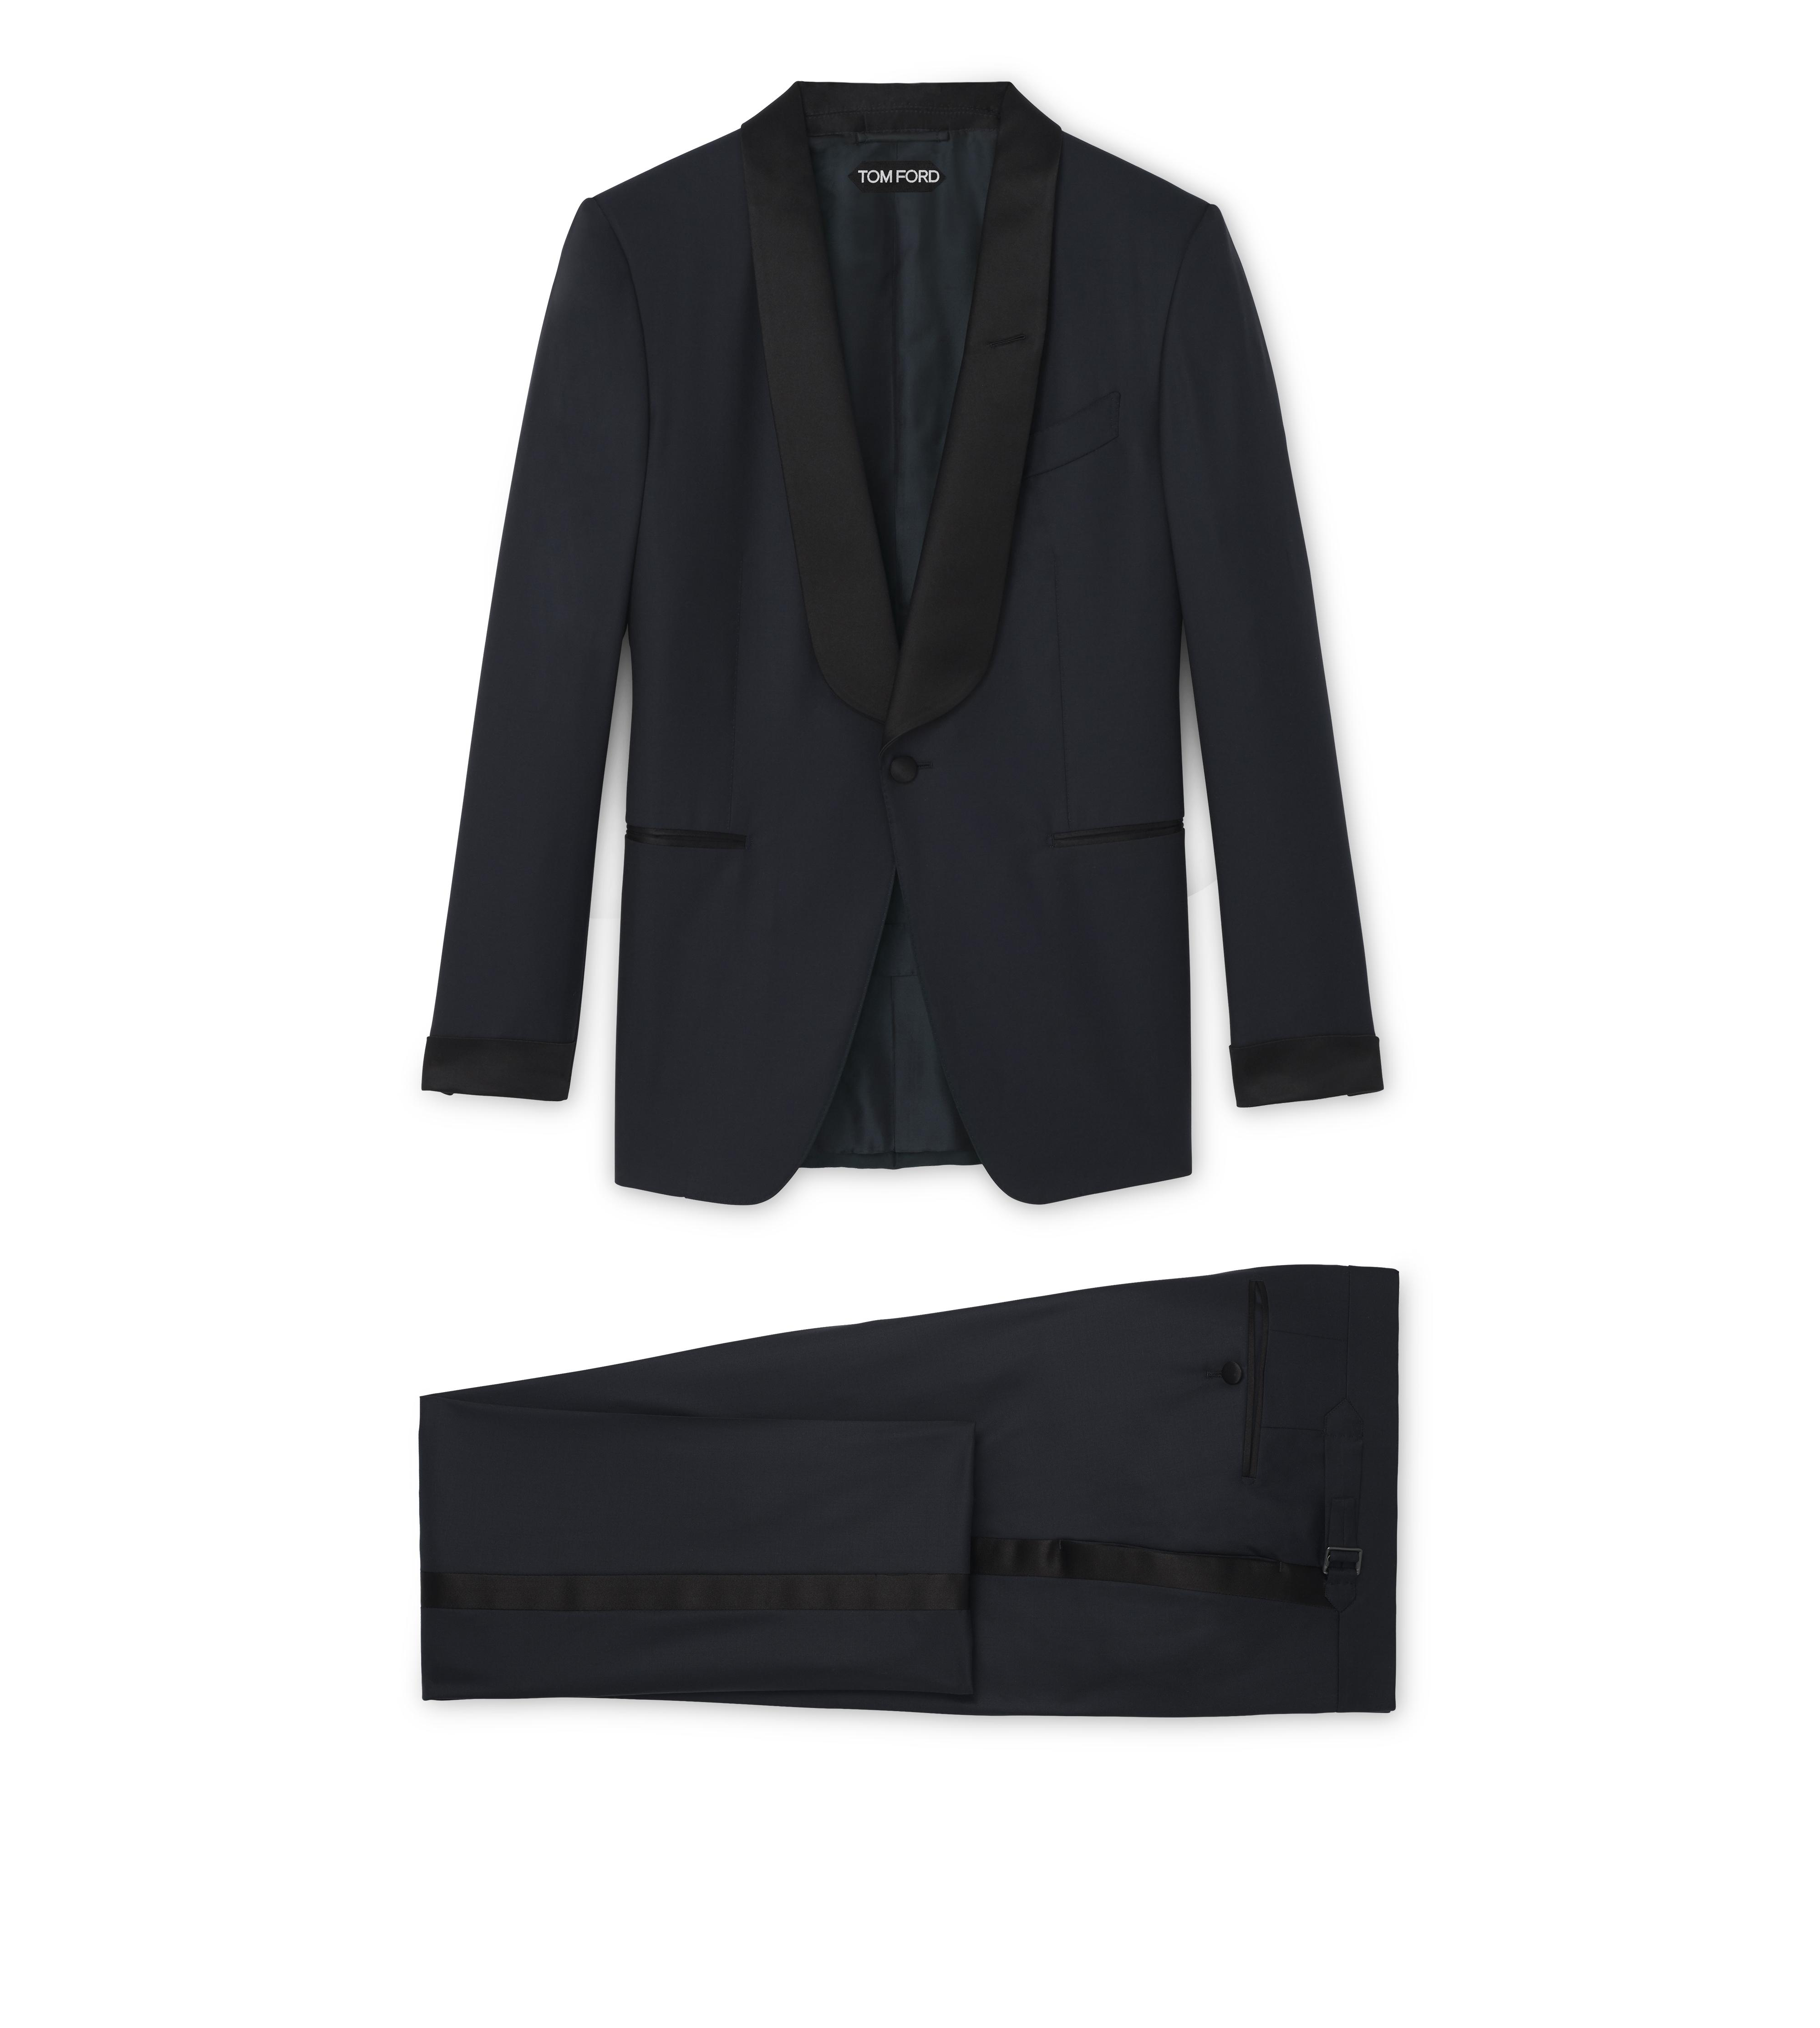 O'CONNOR SHAWL COLLAR EVENING SUIT A thumbnail